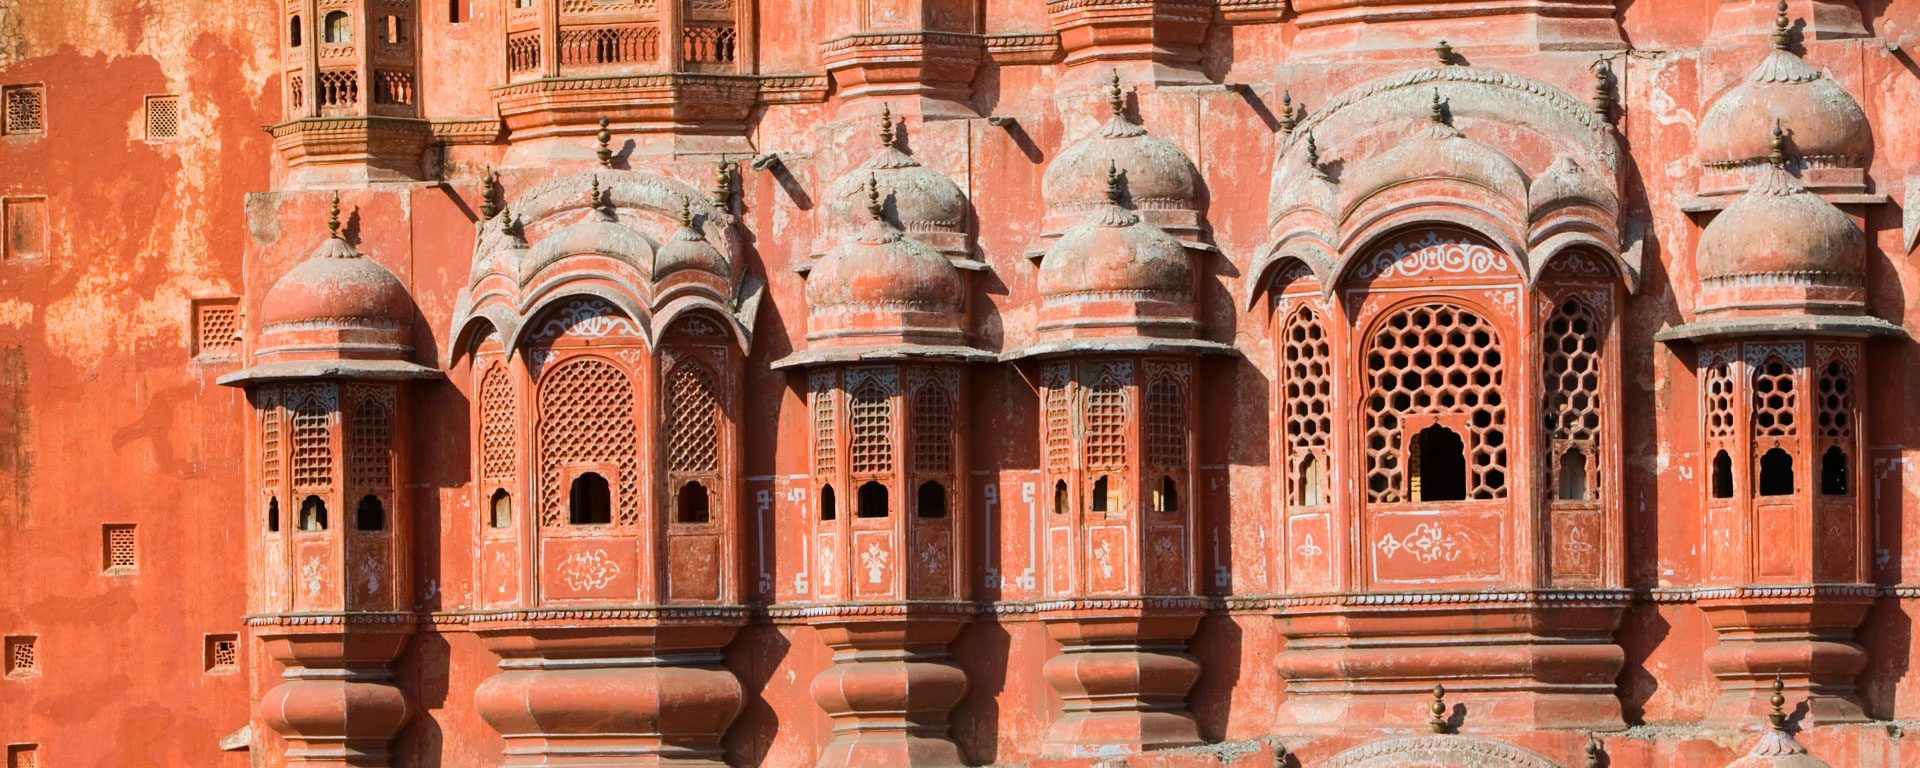 Exterior of the Hawa Mahal in Jaipur, India